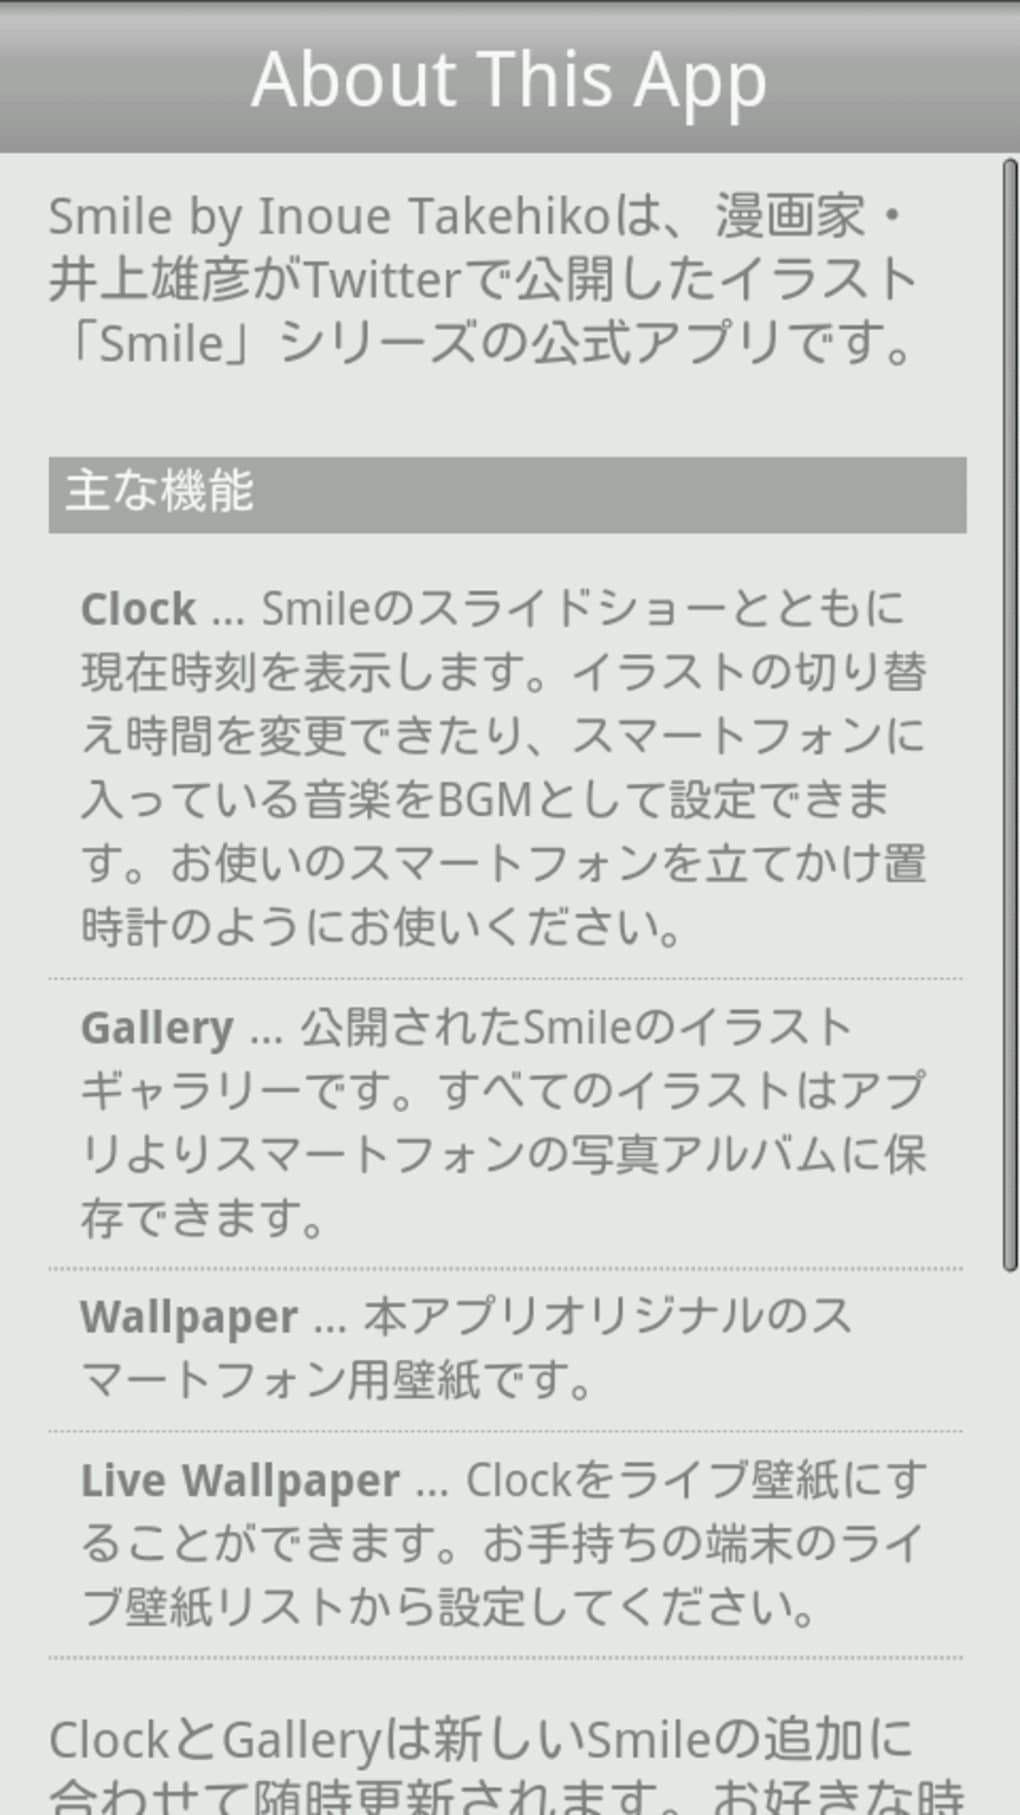 Smile By Inoue Takehiko For Android ダウンロード